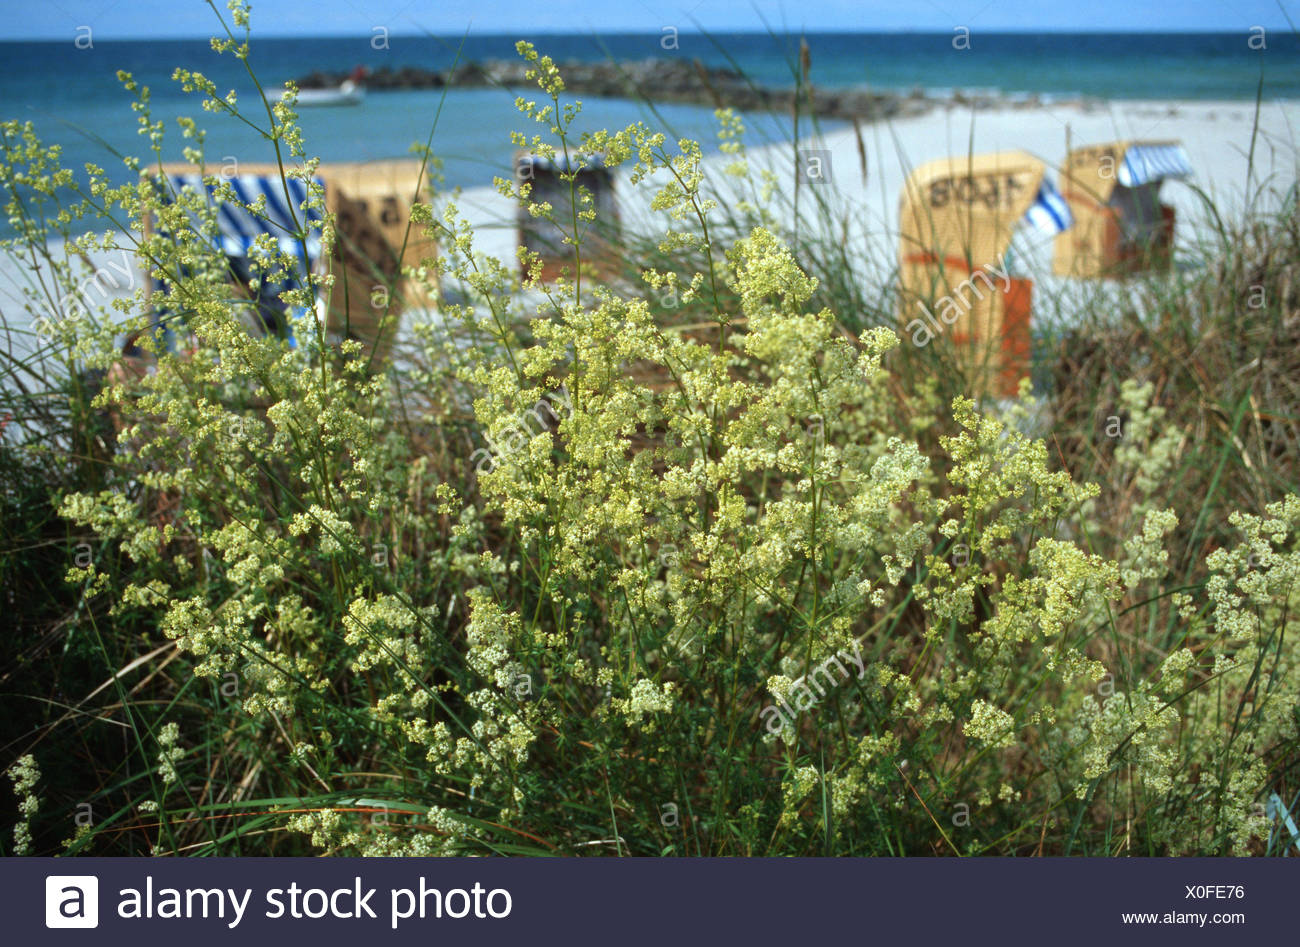 Wiegand Sylt Northern Bedstraw High Resolution Stock Photography And Images - Alamy